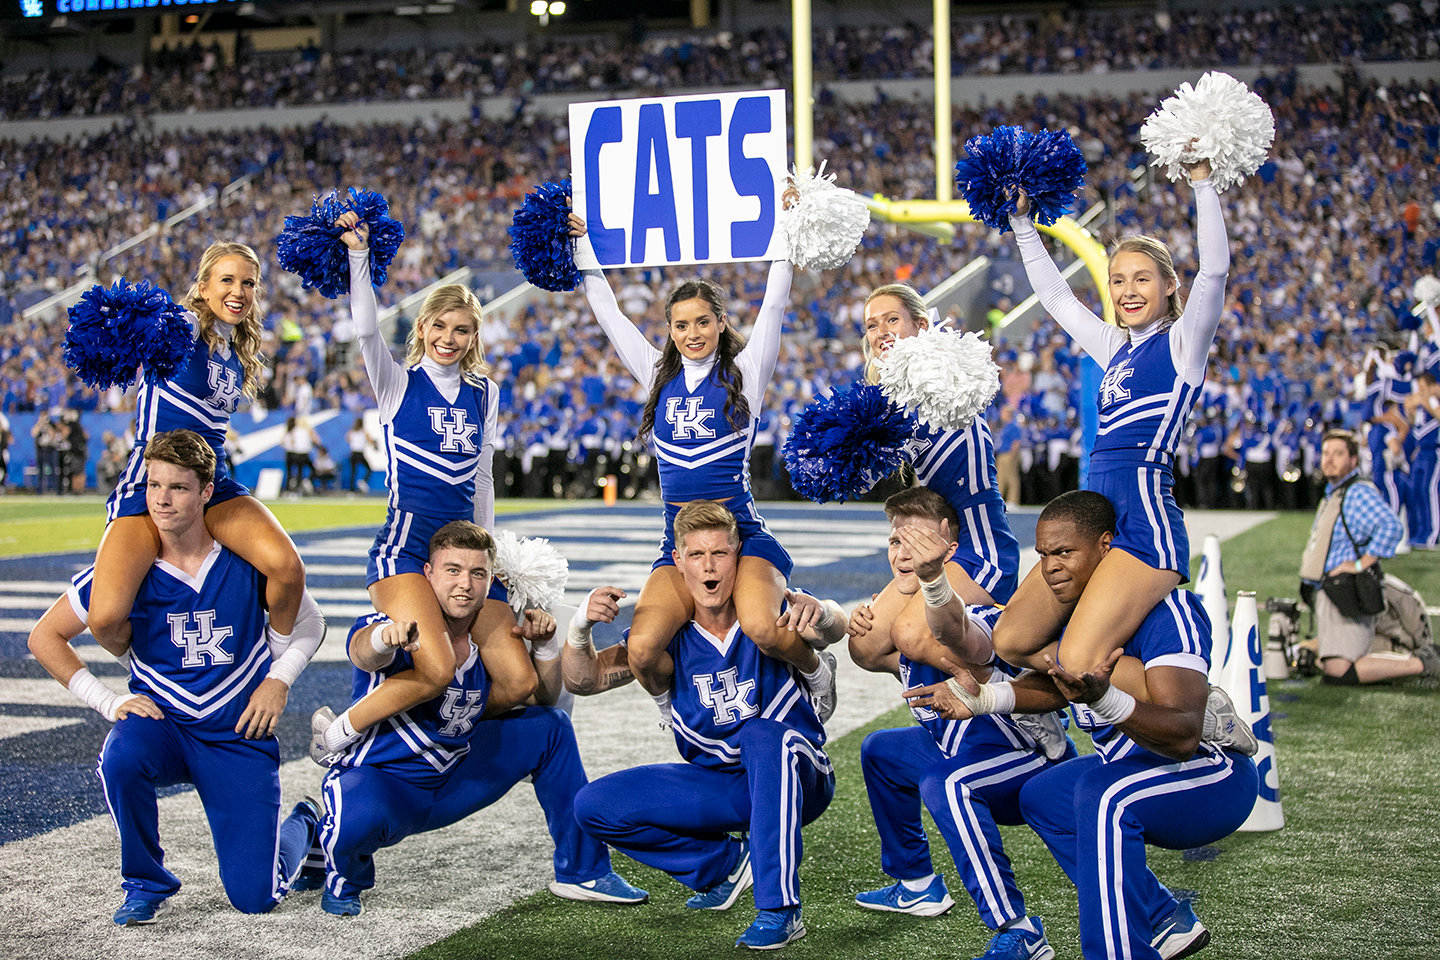 UK cheerleaders on the sidelines. (Kentucky Today/Tammie Brown)